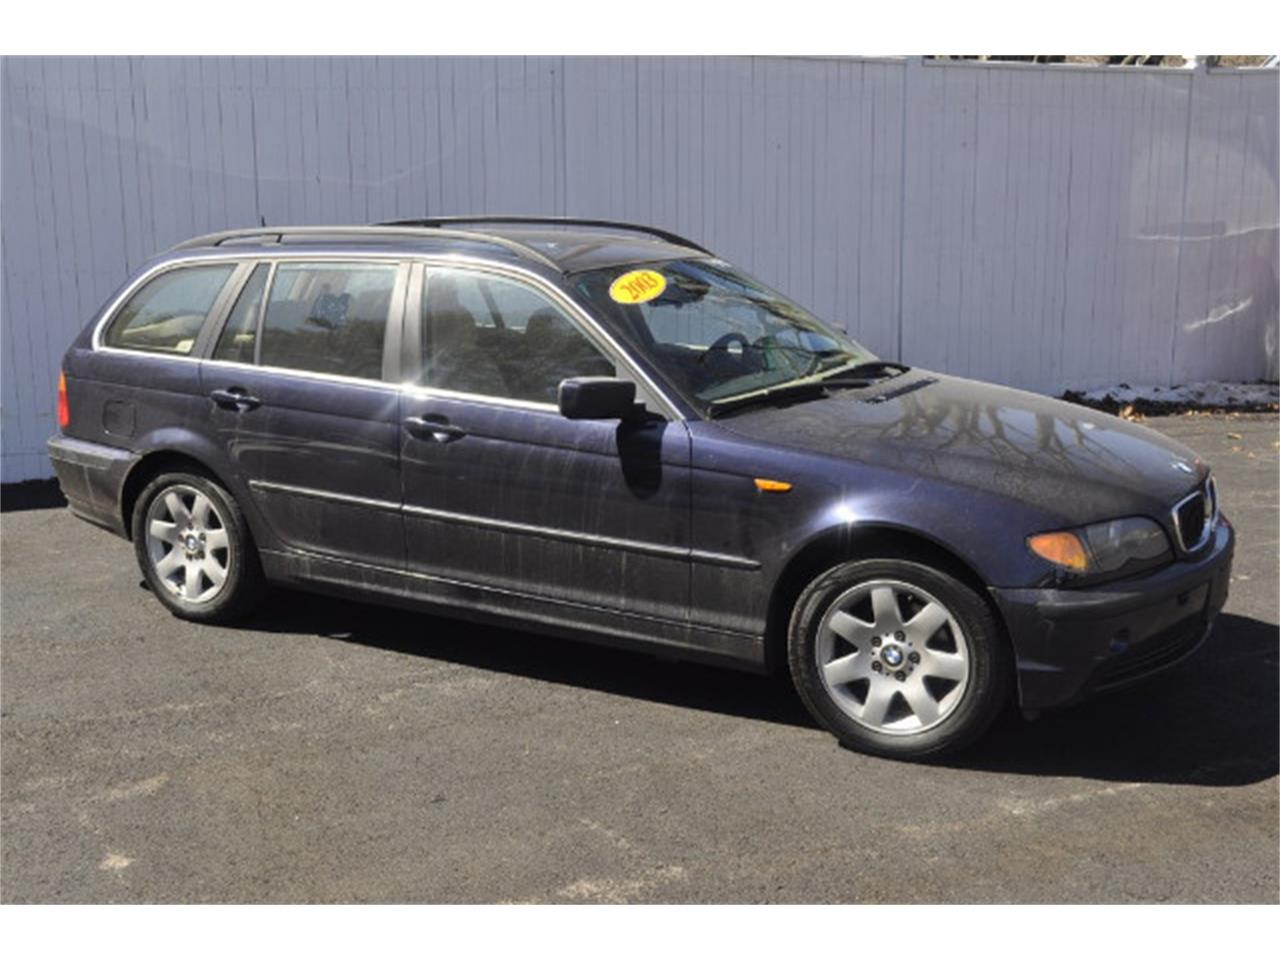 For Sale: 2003 BMW 3-Series Sport Wagon in Milford, New Hampshire